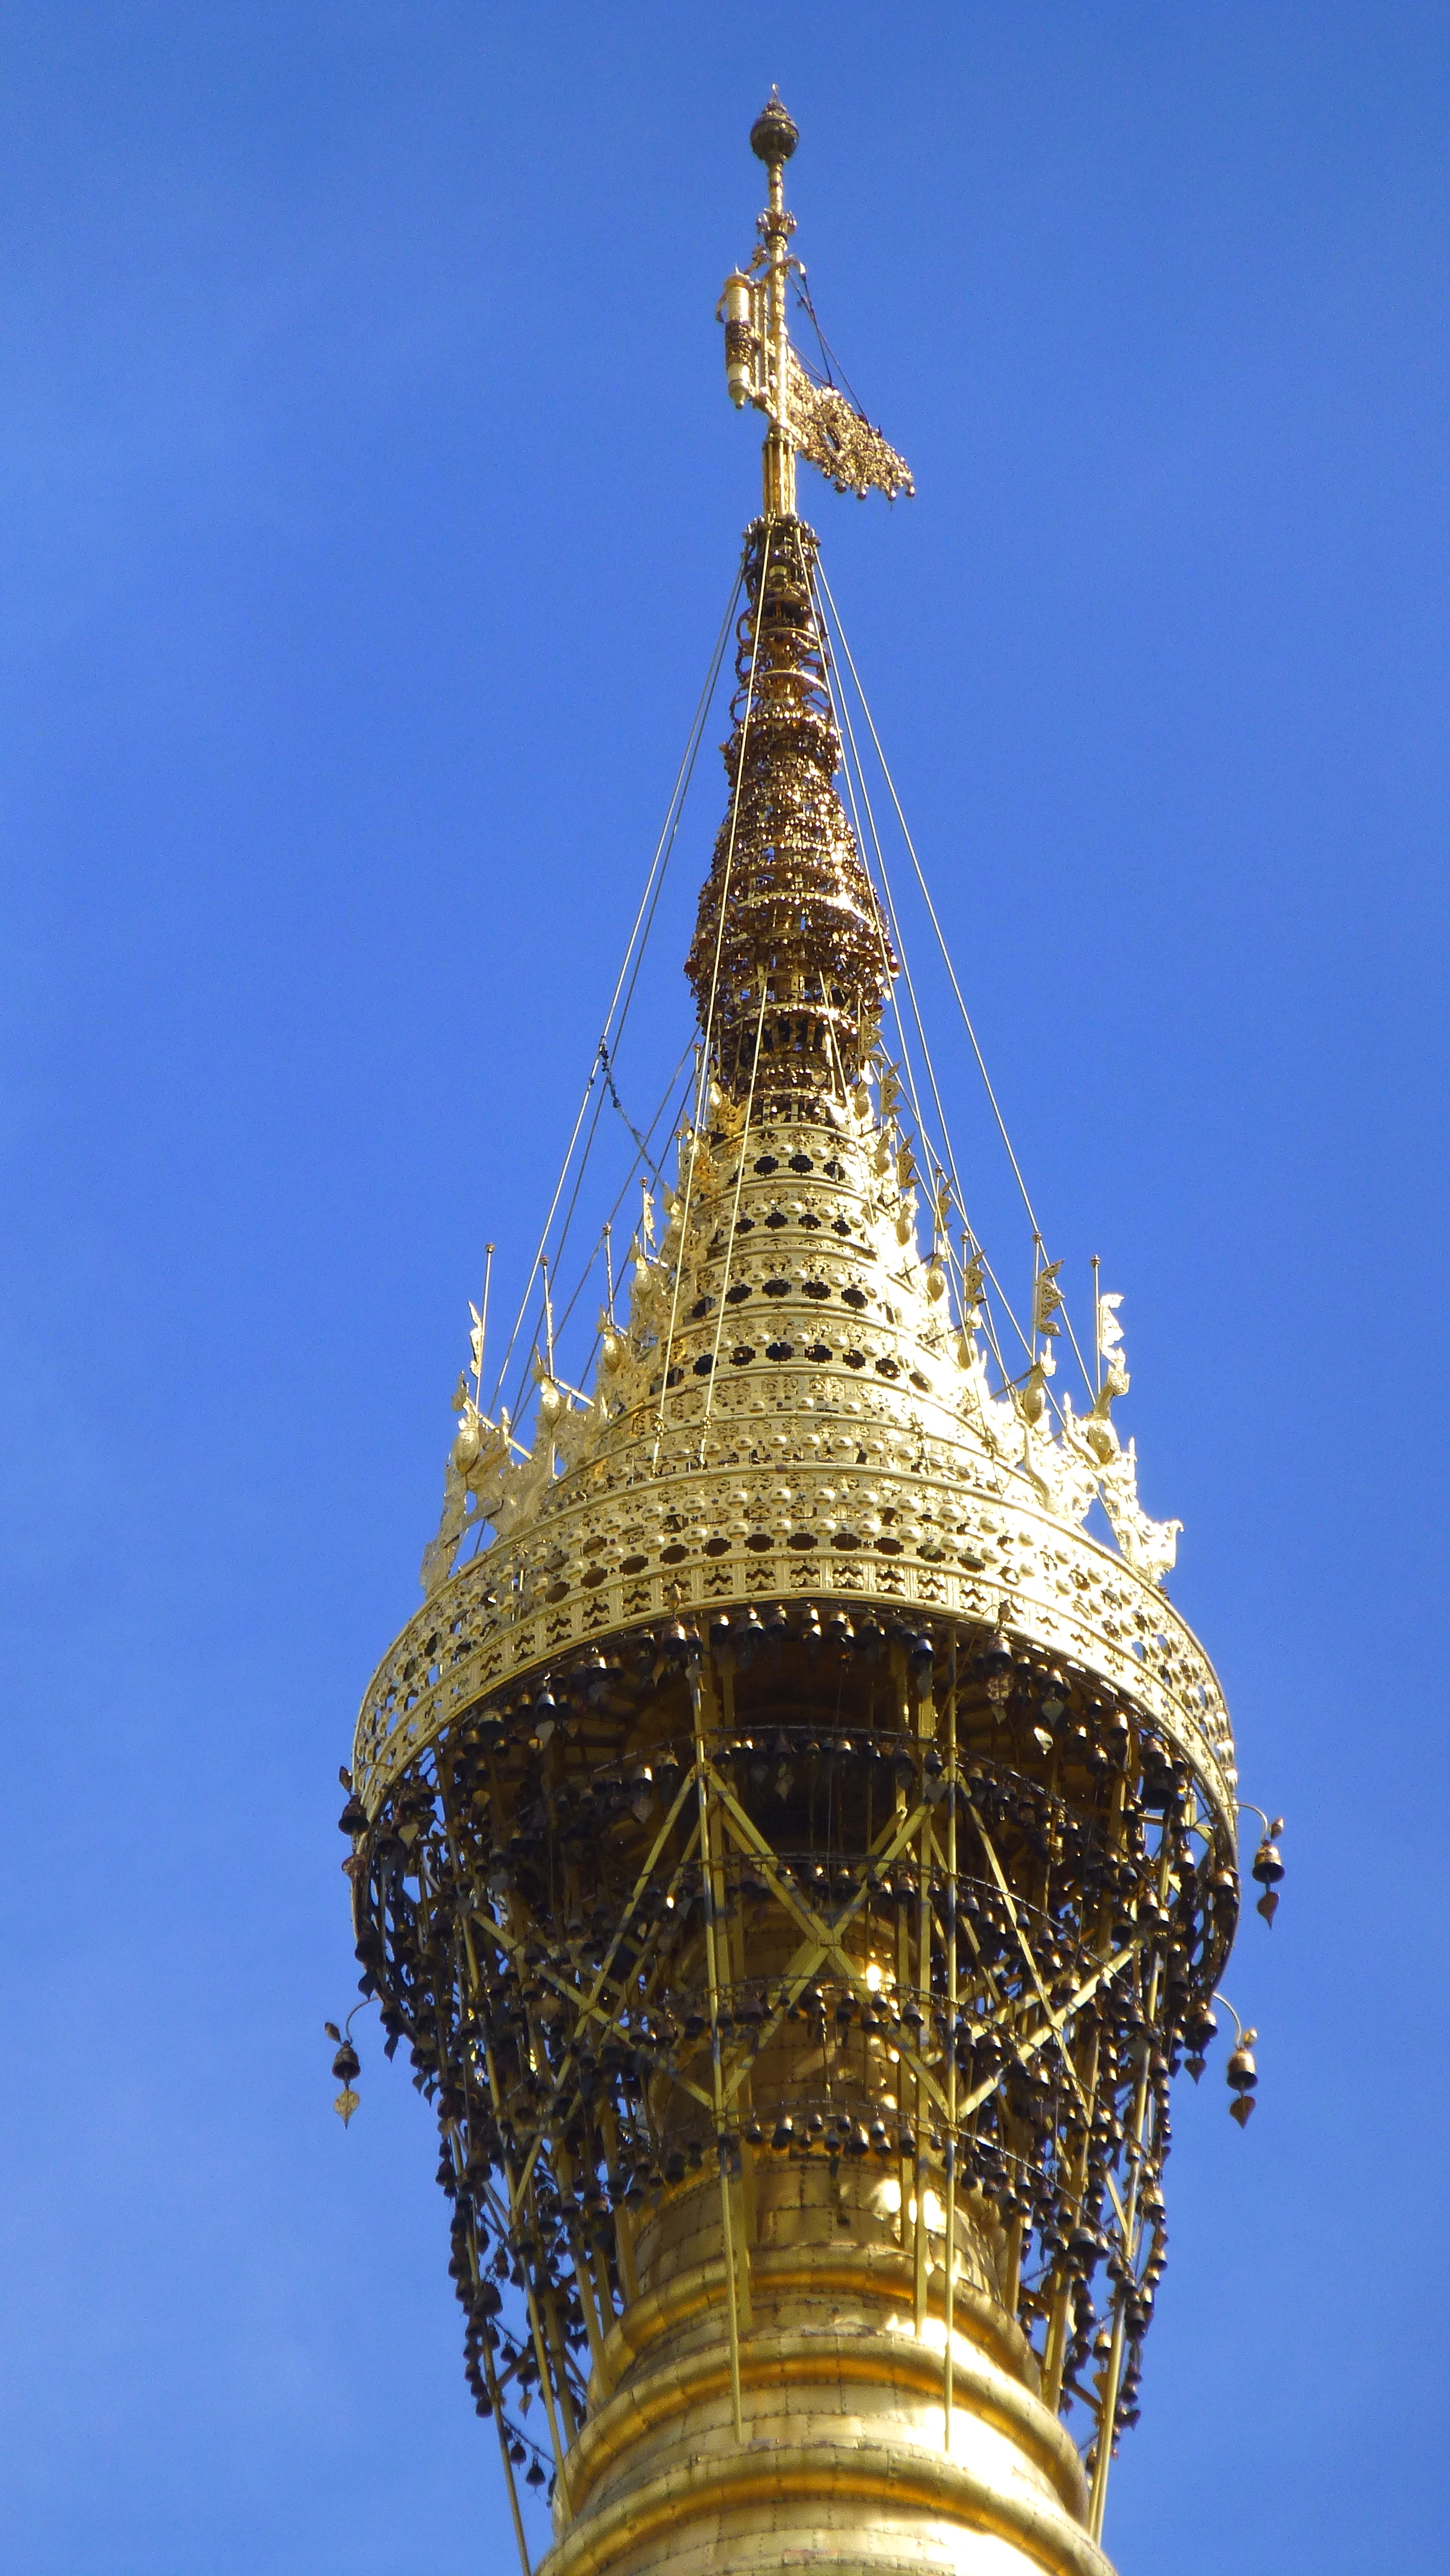 The Shwedagon umbrella (image nicked from the interwebs, as it's too high up to protograph)